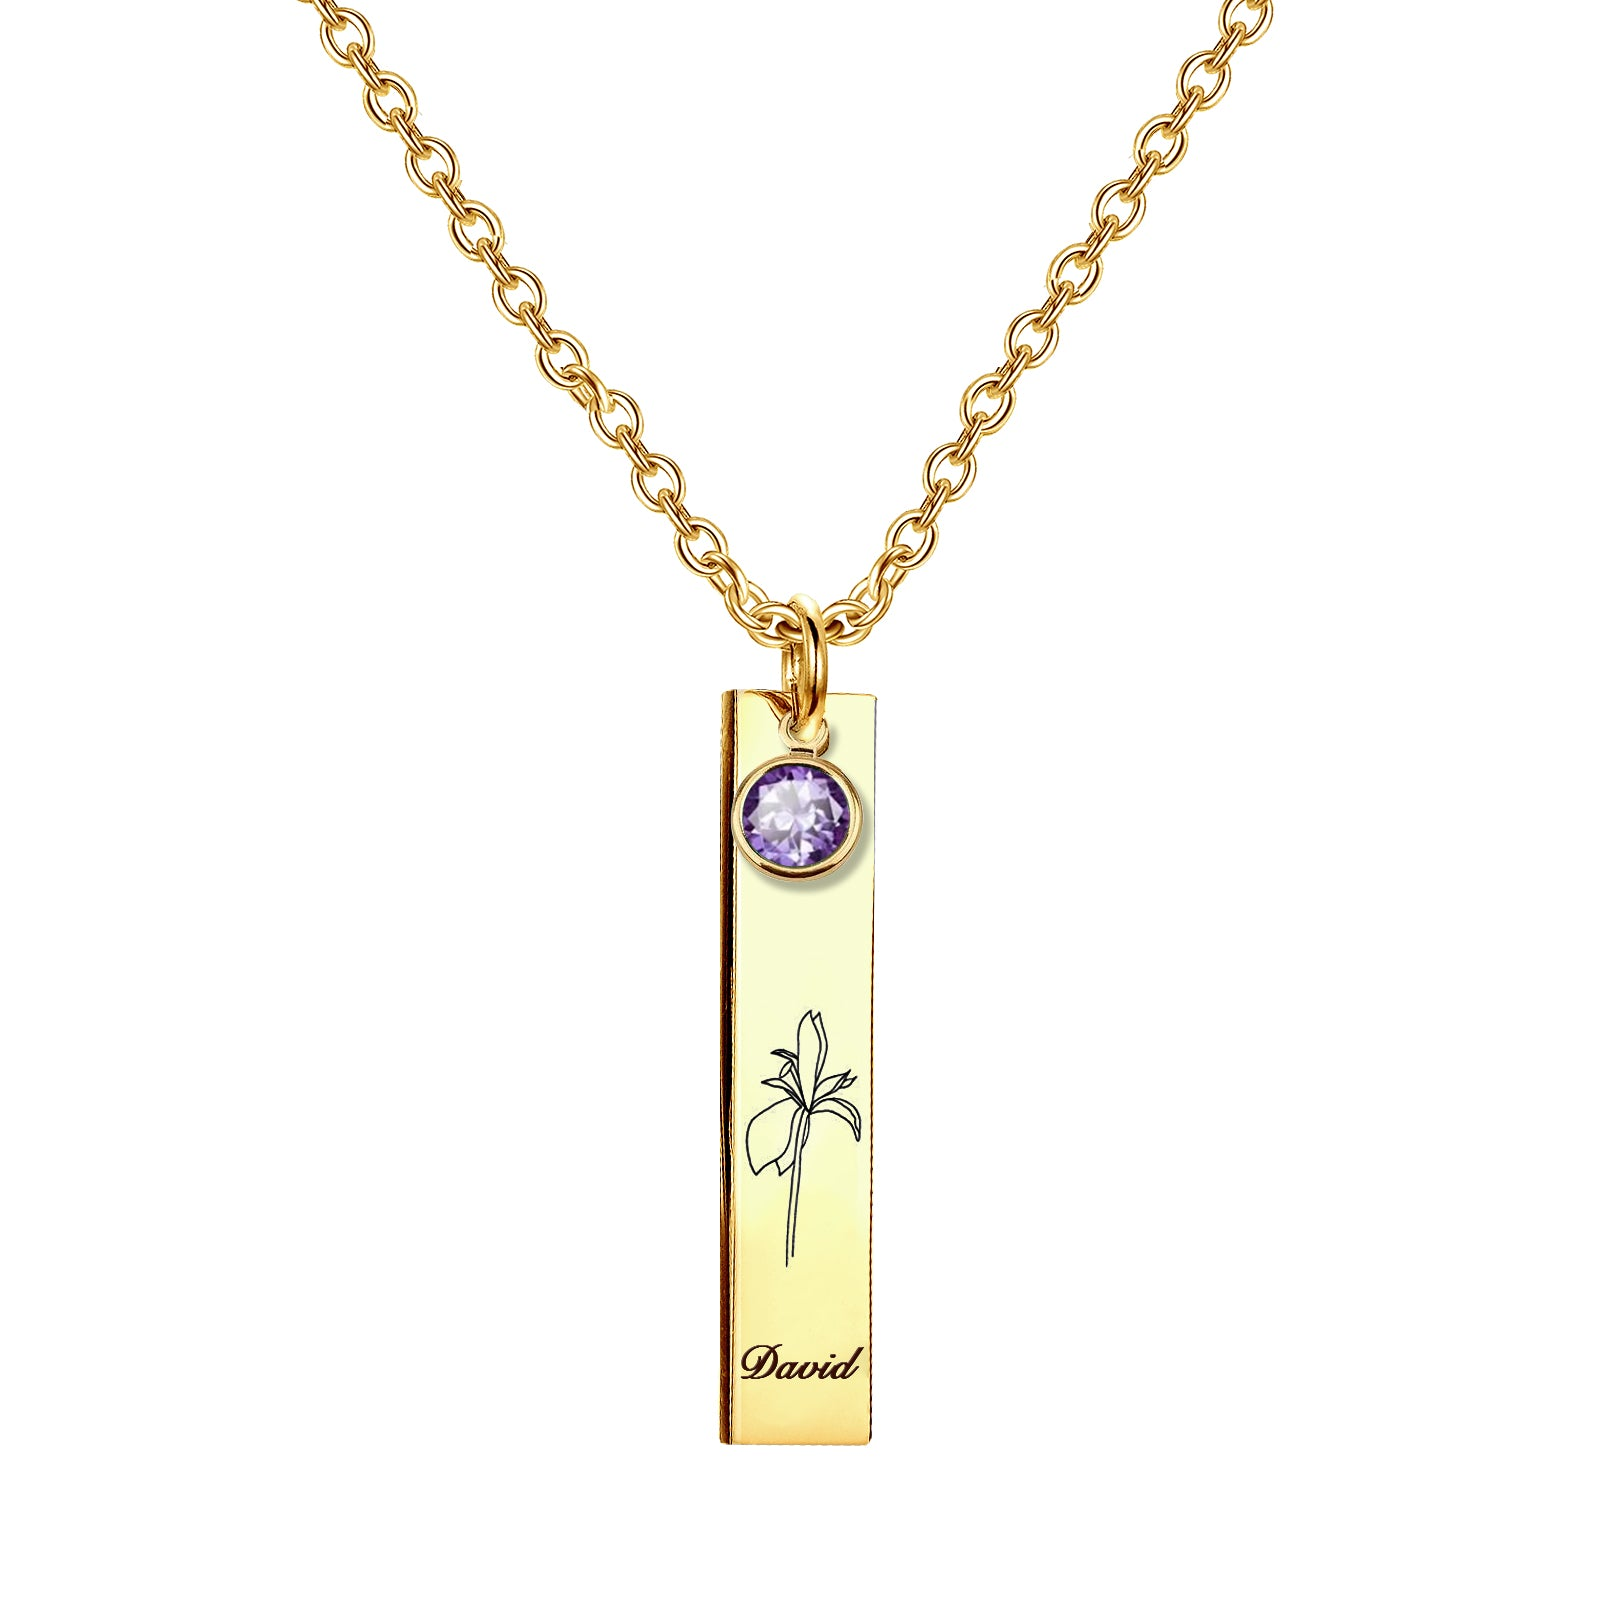 925 Sterling Silver Personalized Name & Birth Month Flower Vertical Bar Necklace